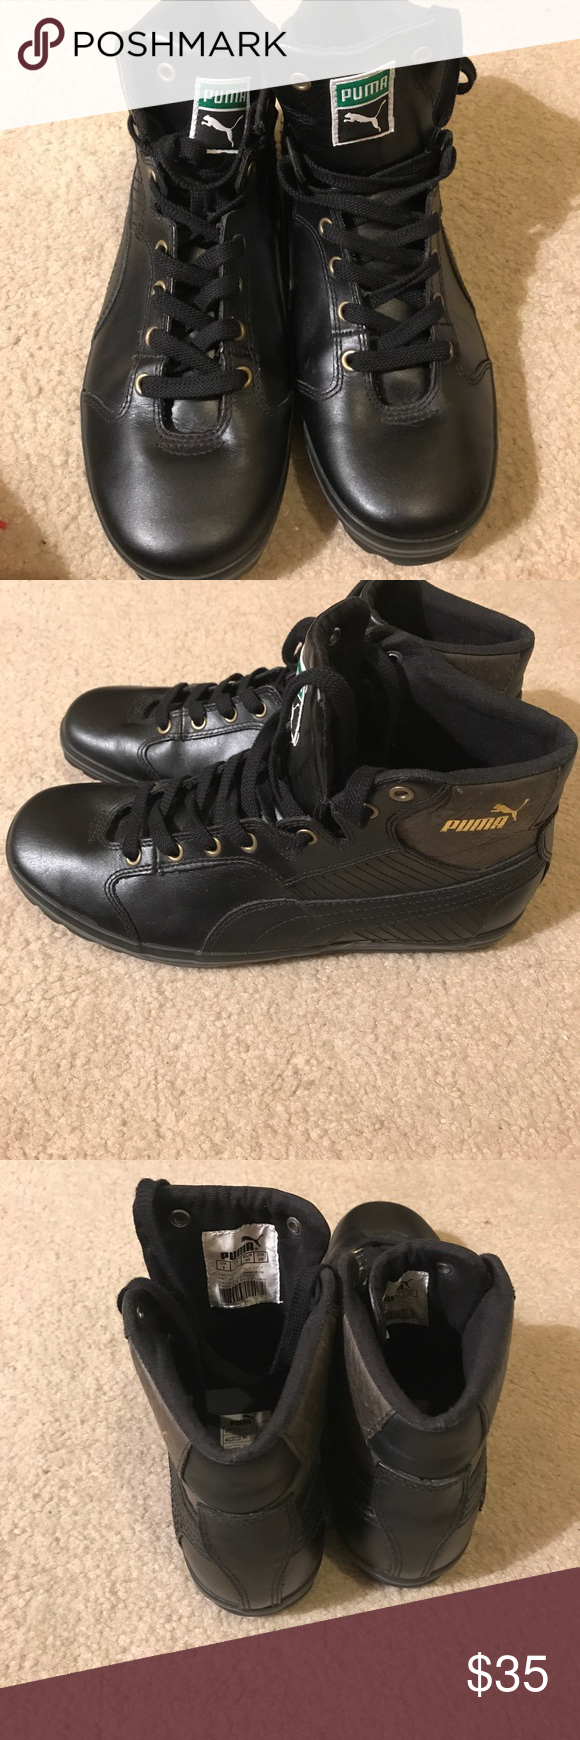 cb9121e0ab3d Puma sneaker wrestling Puma black wrestling shoes very good condition .size  10 very nice to wear out casual . puma Shoes